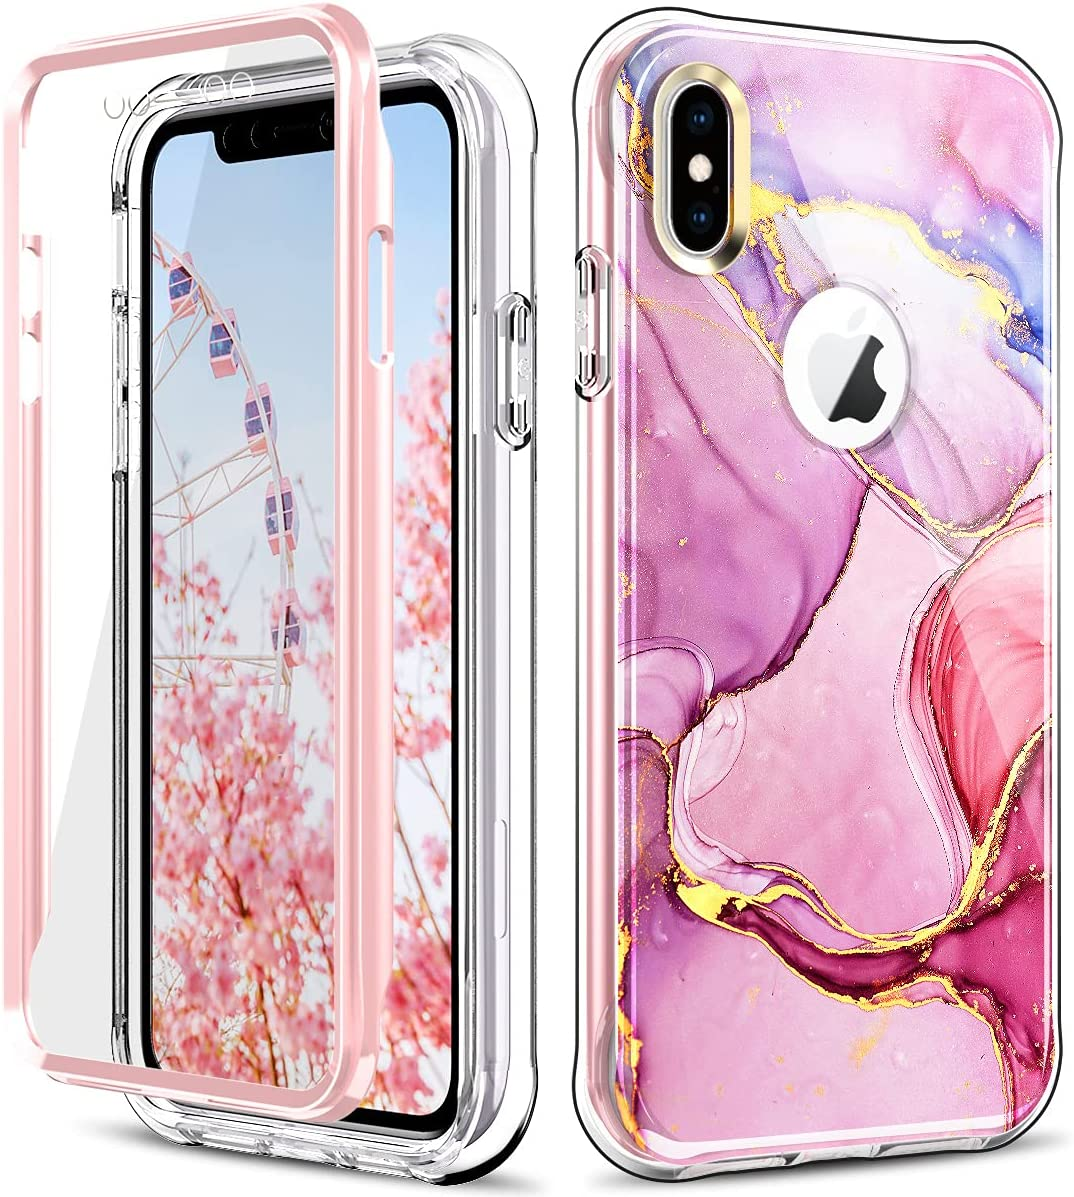 PIXIU Unique Marble Design for iPhone Xs Max Case,Lightweight Dual Layer Full Body Shockproof Protective Case Cover (Built in Screen Protector) for Apple iPhone Xs Max 6.5 inch